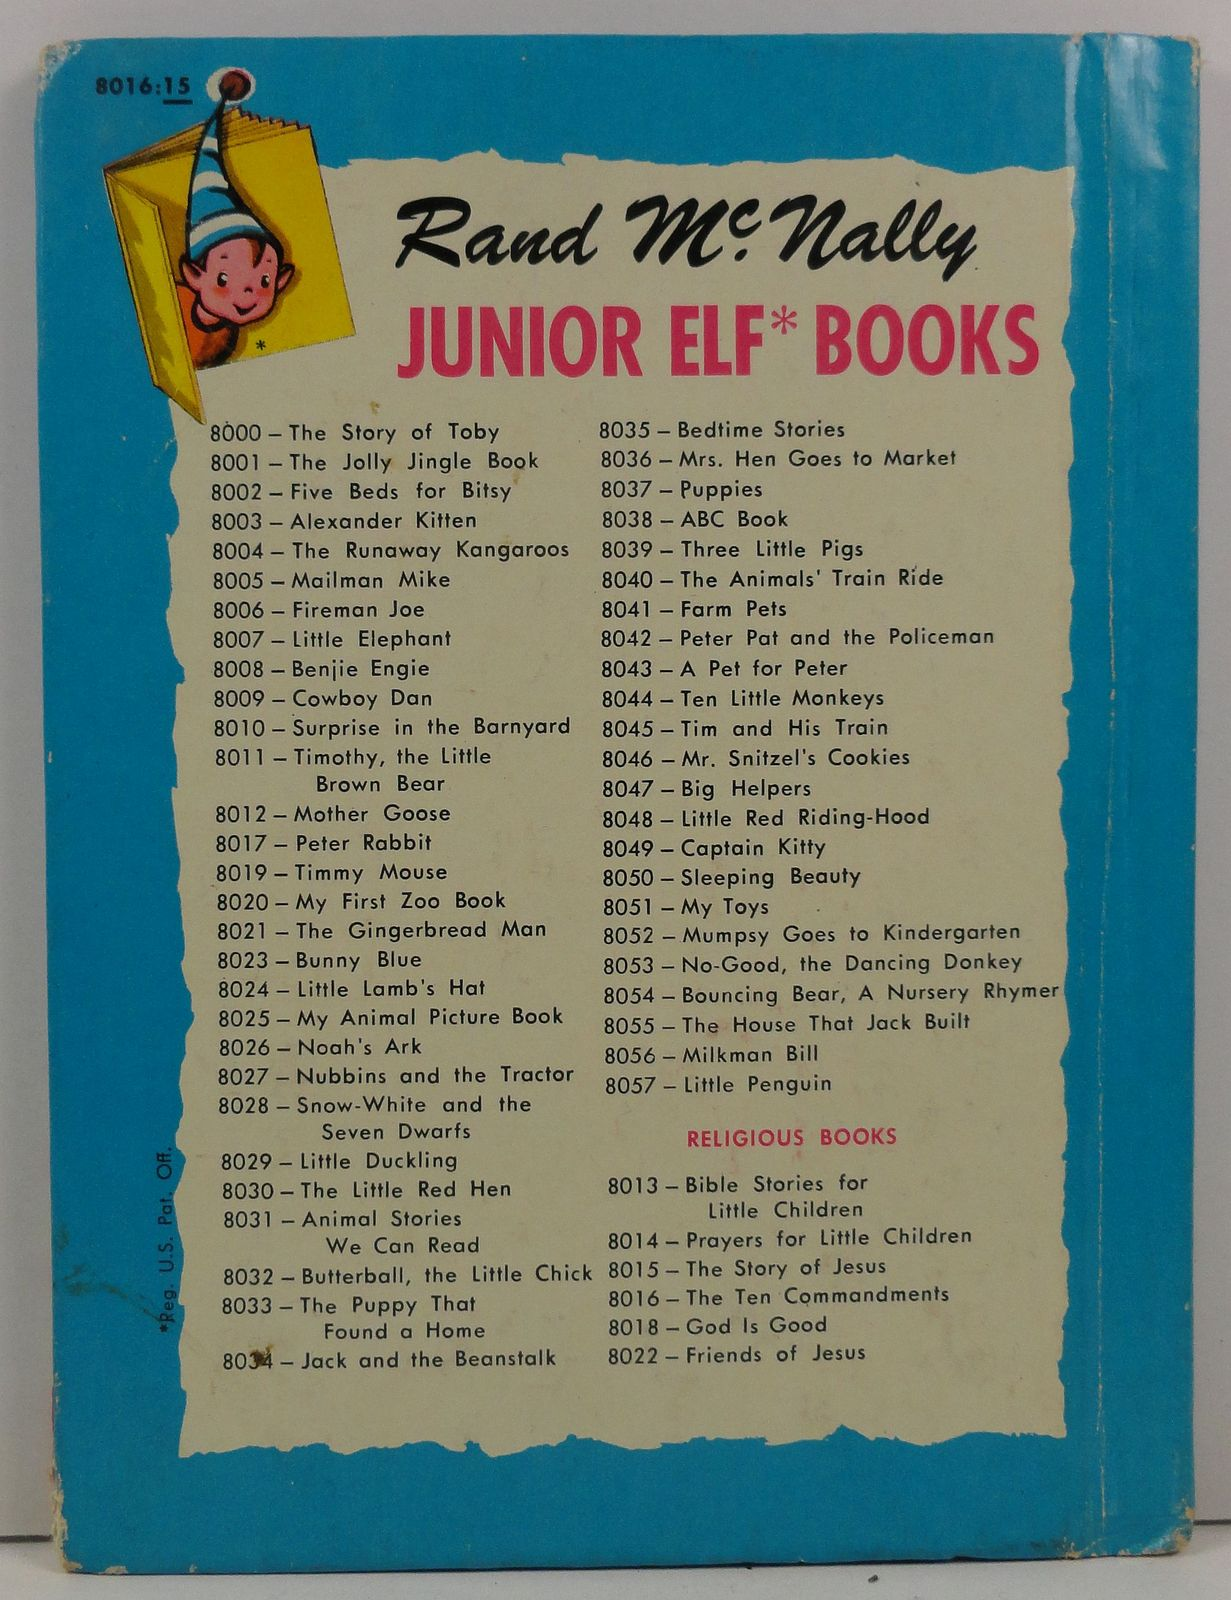 The Ten Commandments Mary Alice Jones Junior Elf Book